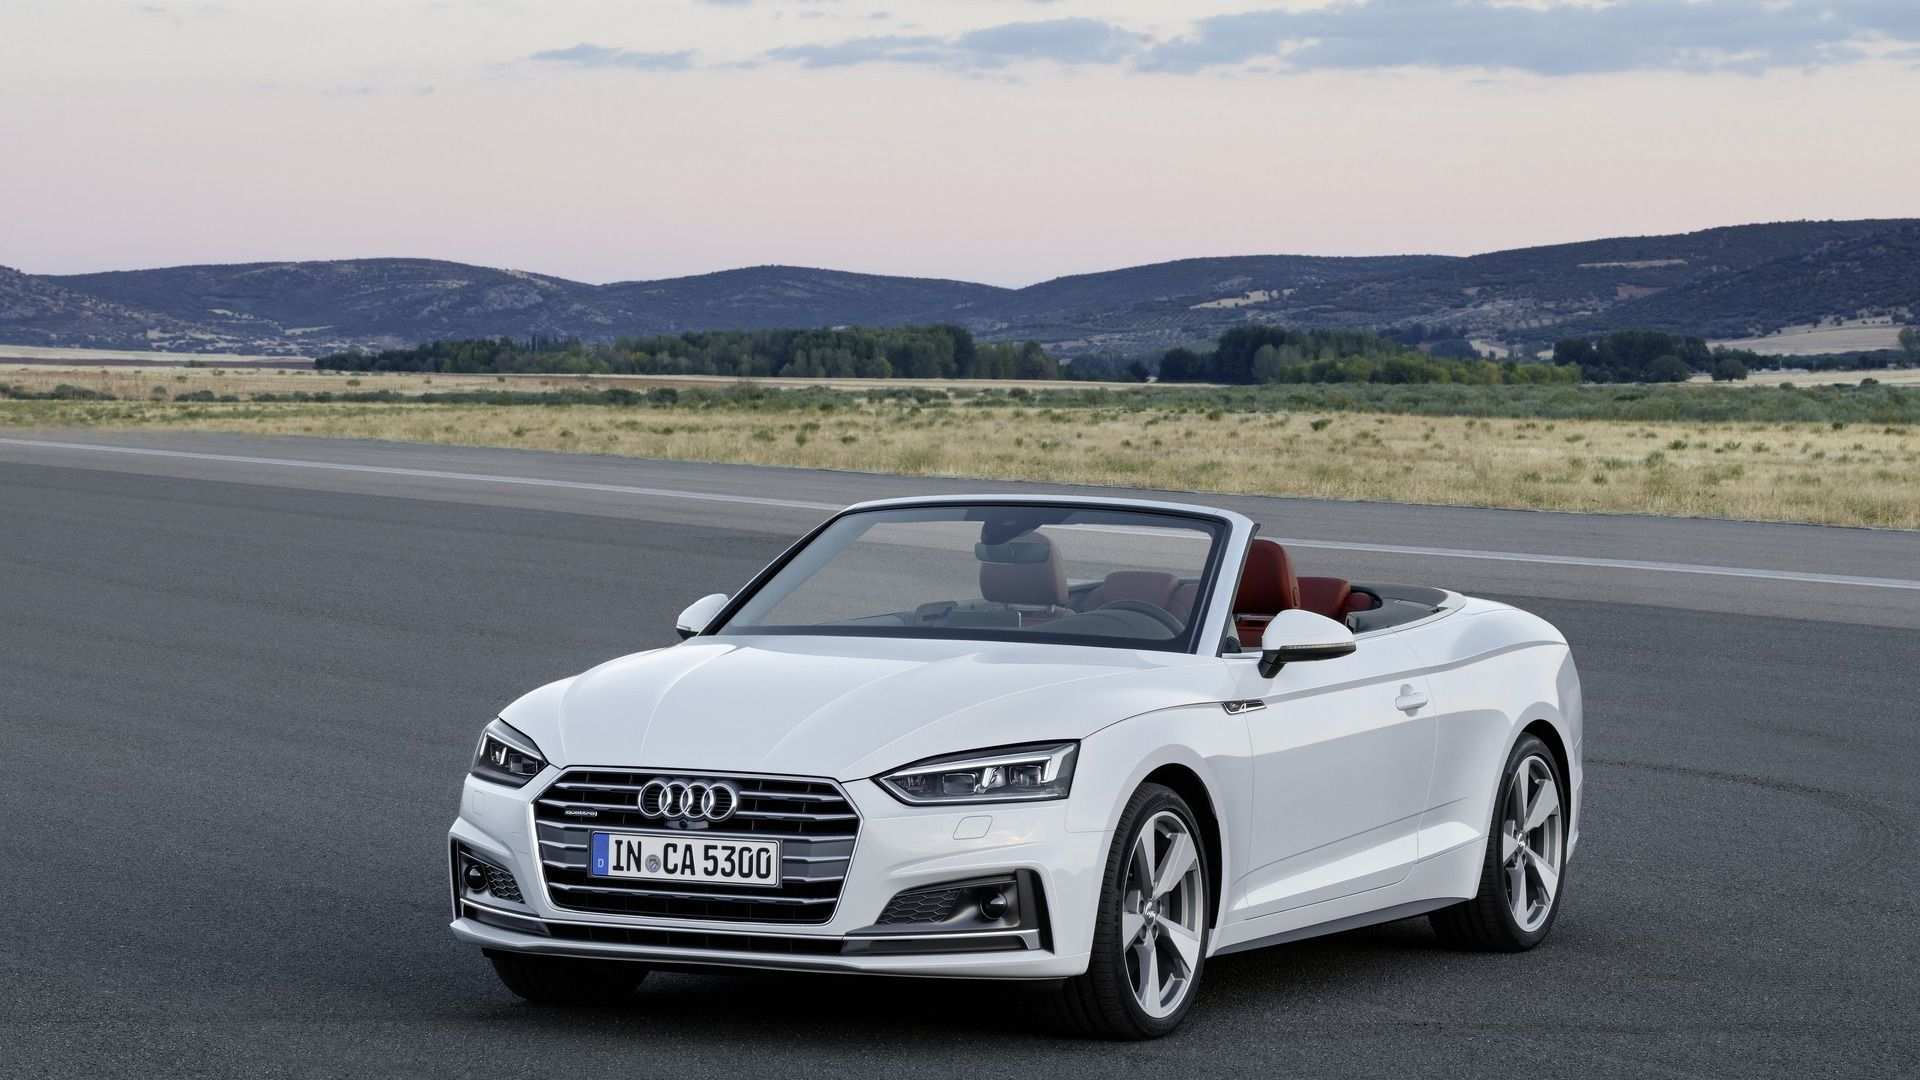 78 Gallery of Audi Cabriolet 2020 Price and Review for Audi Cabriolet 2020